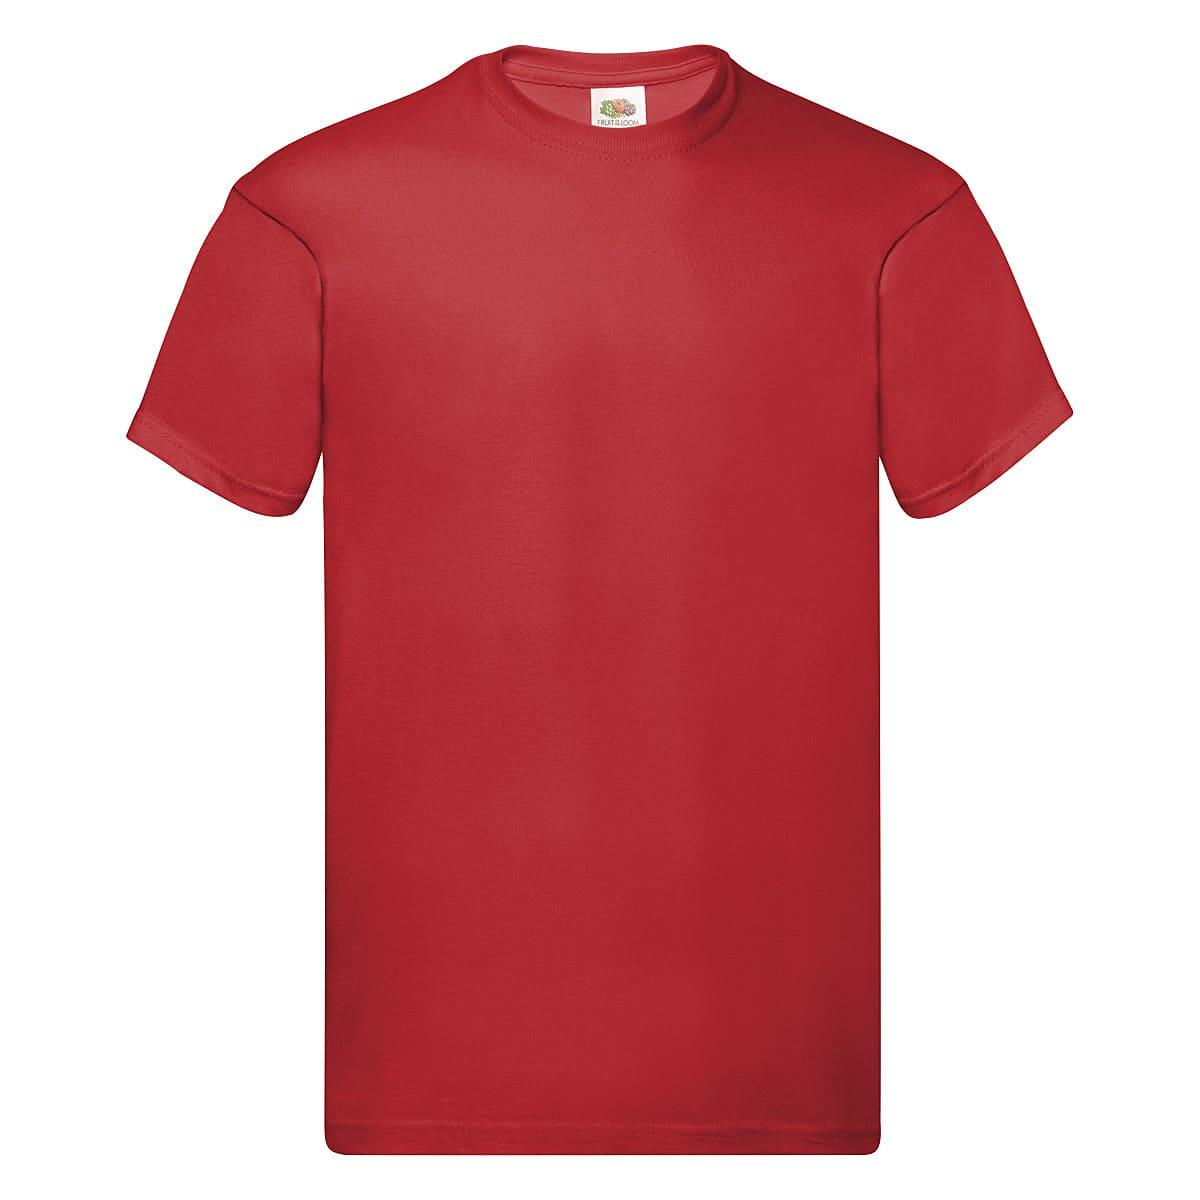 Fruit Of The Loom Original Full Cut T-Shirt in Red (Product Code: 61082)